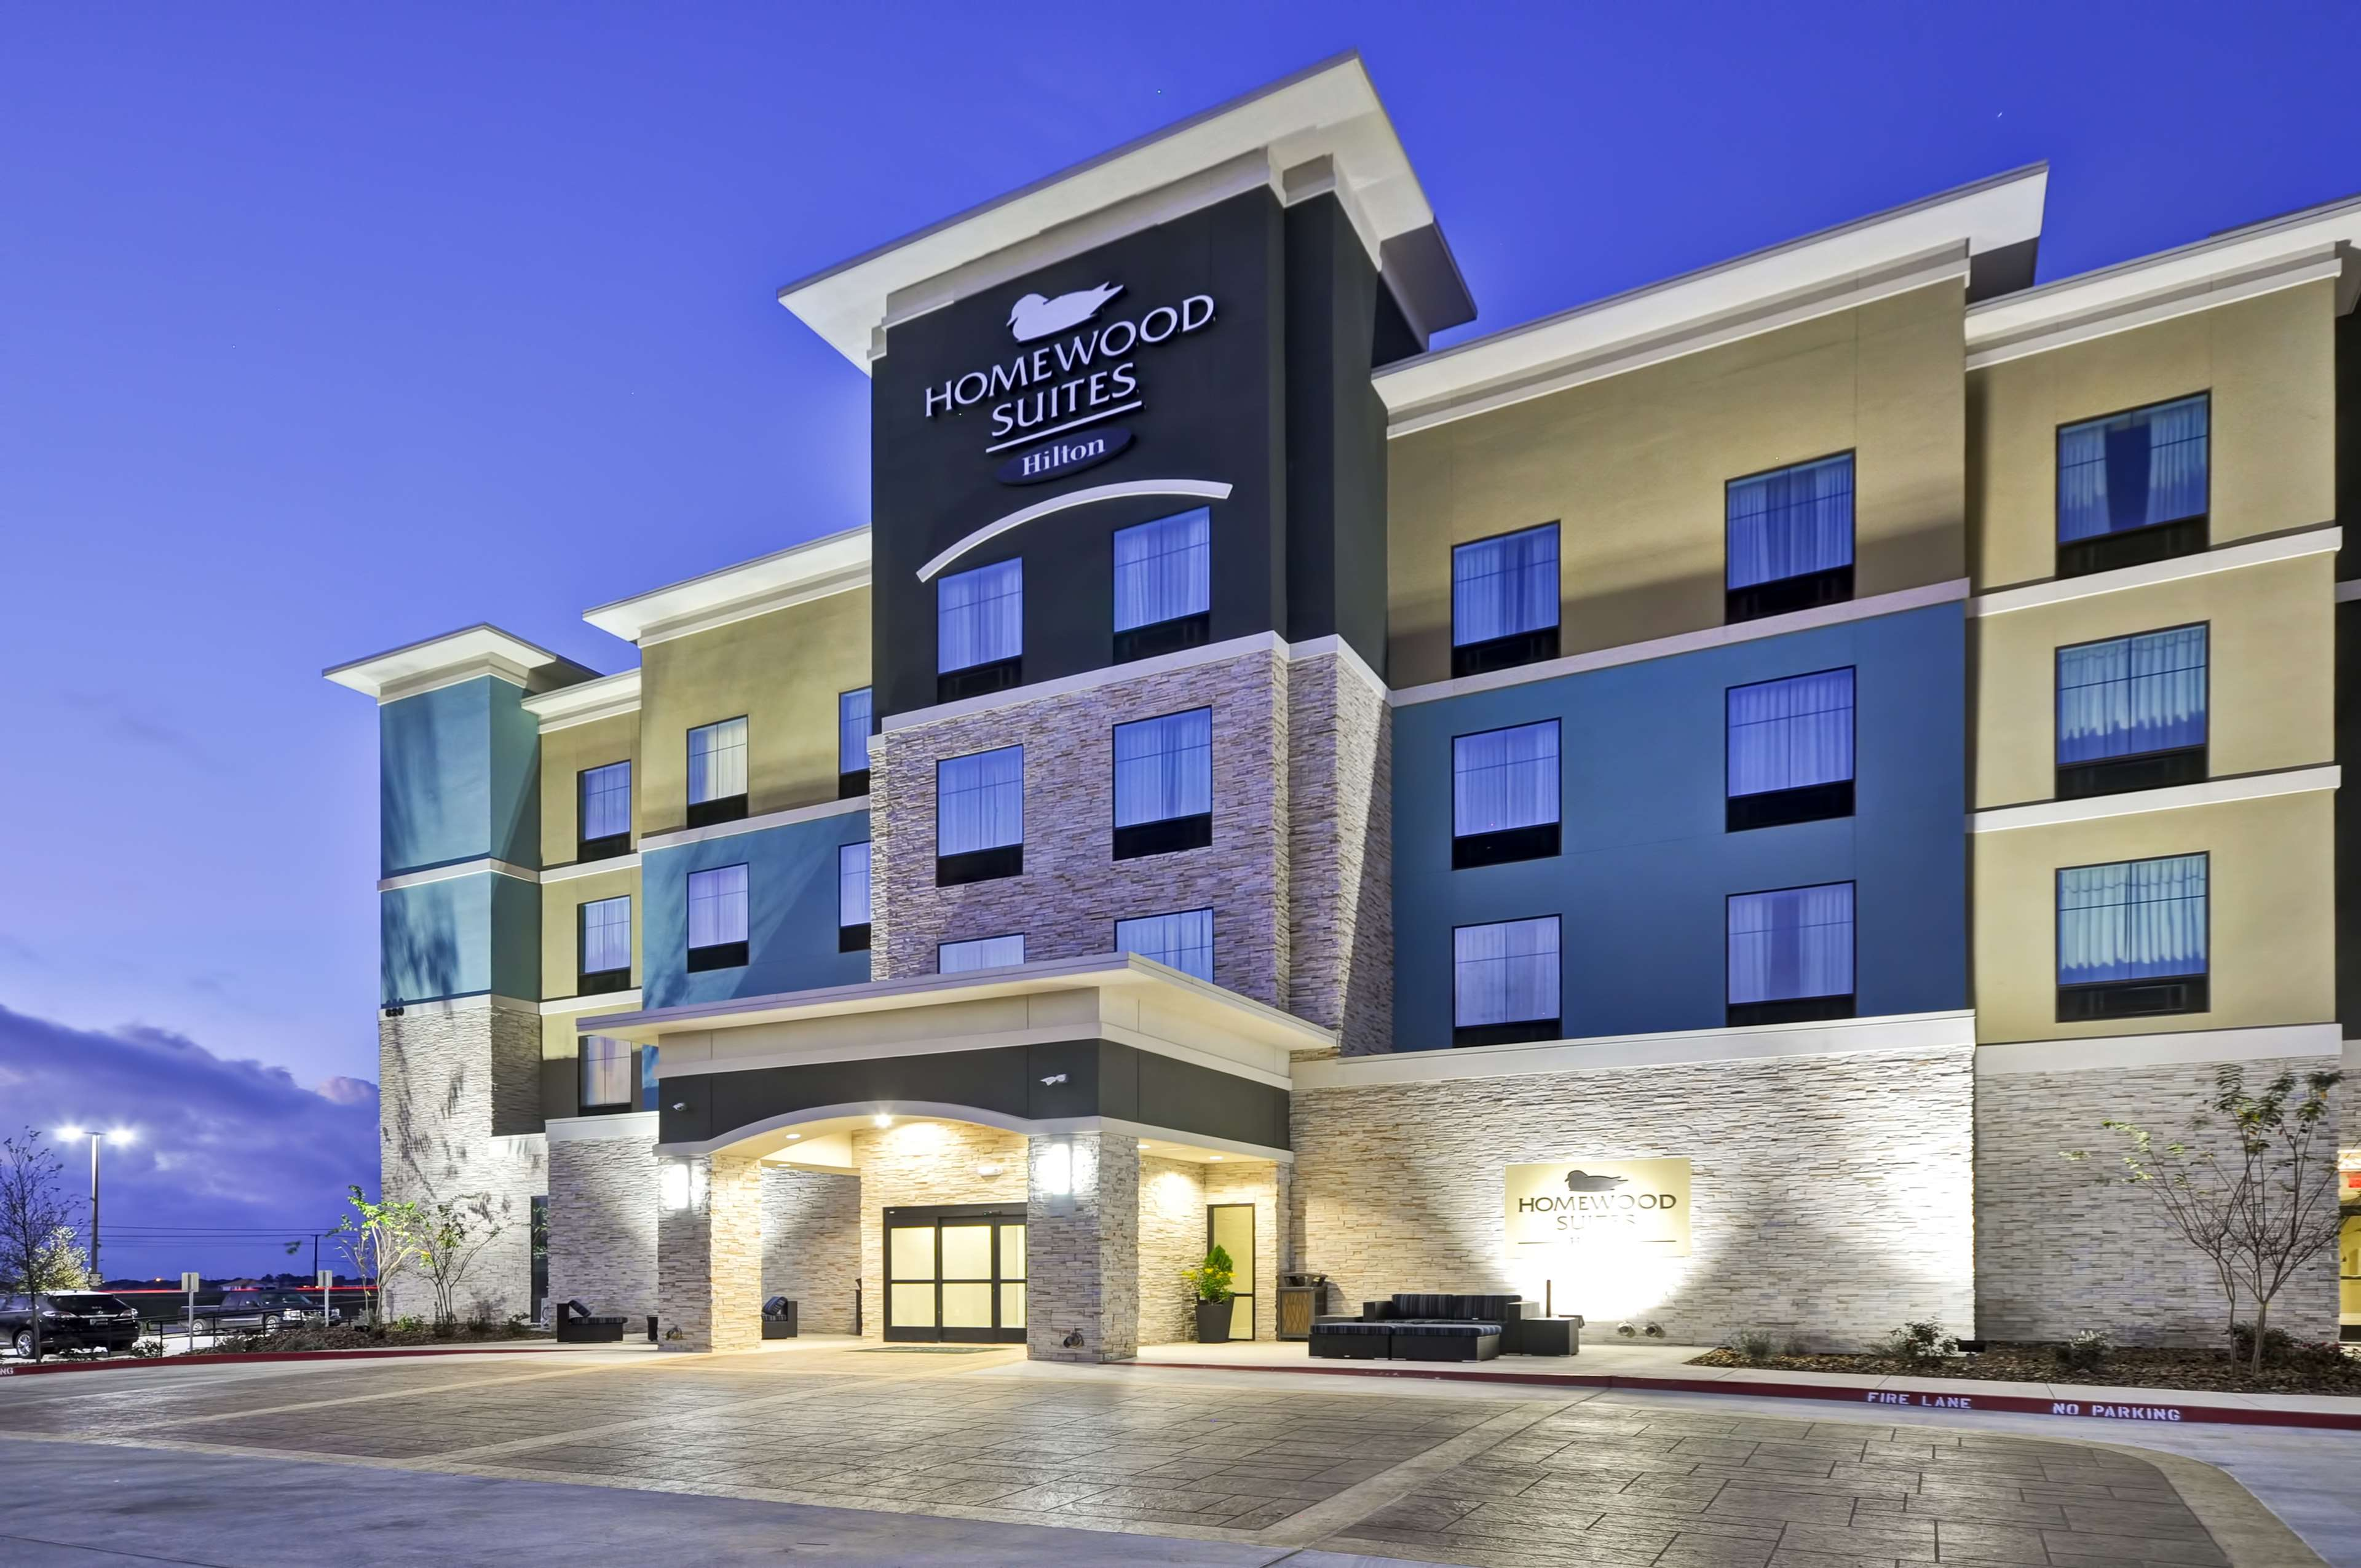 Homewood Suites by Hilton New Braunfels image 6